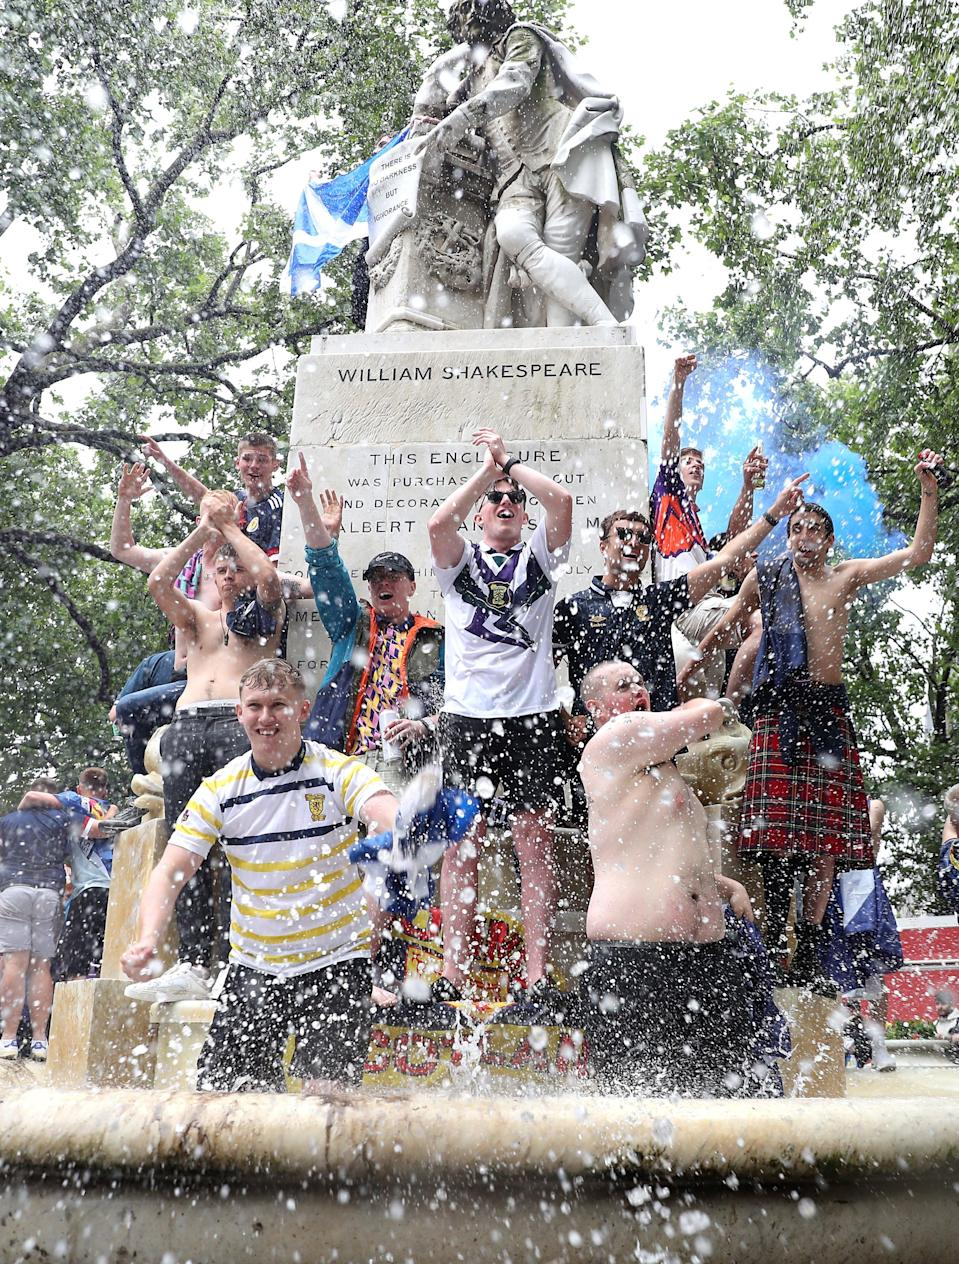 The weather didn't stop fans leaping into London fountains. (PA)